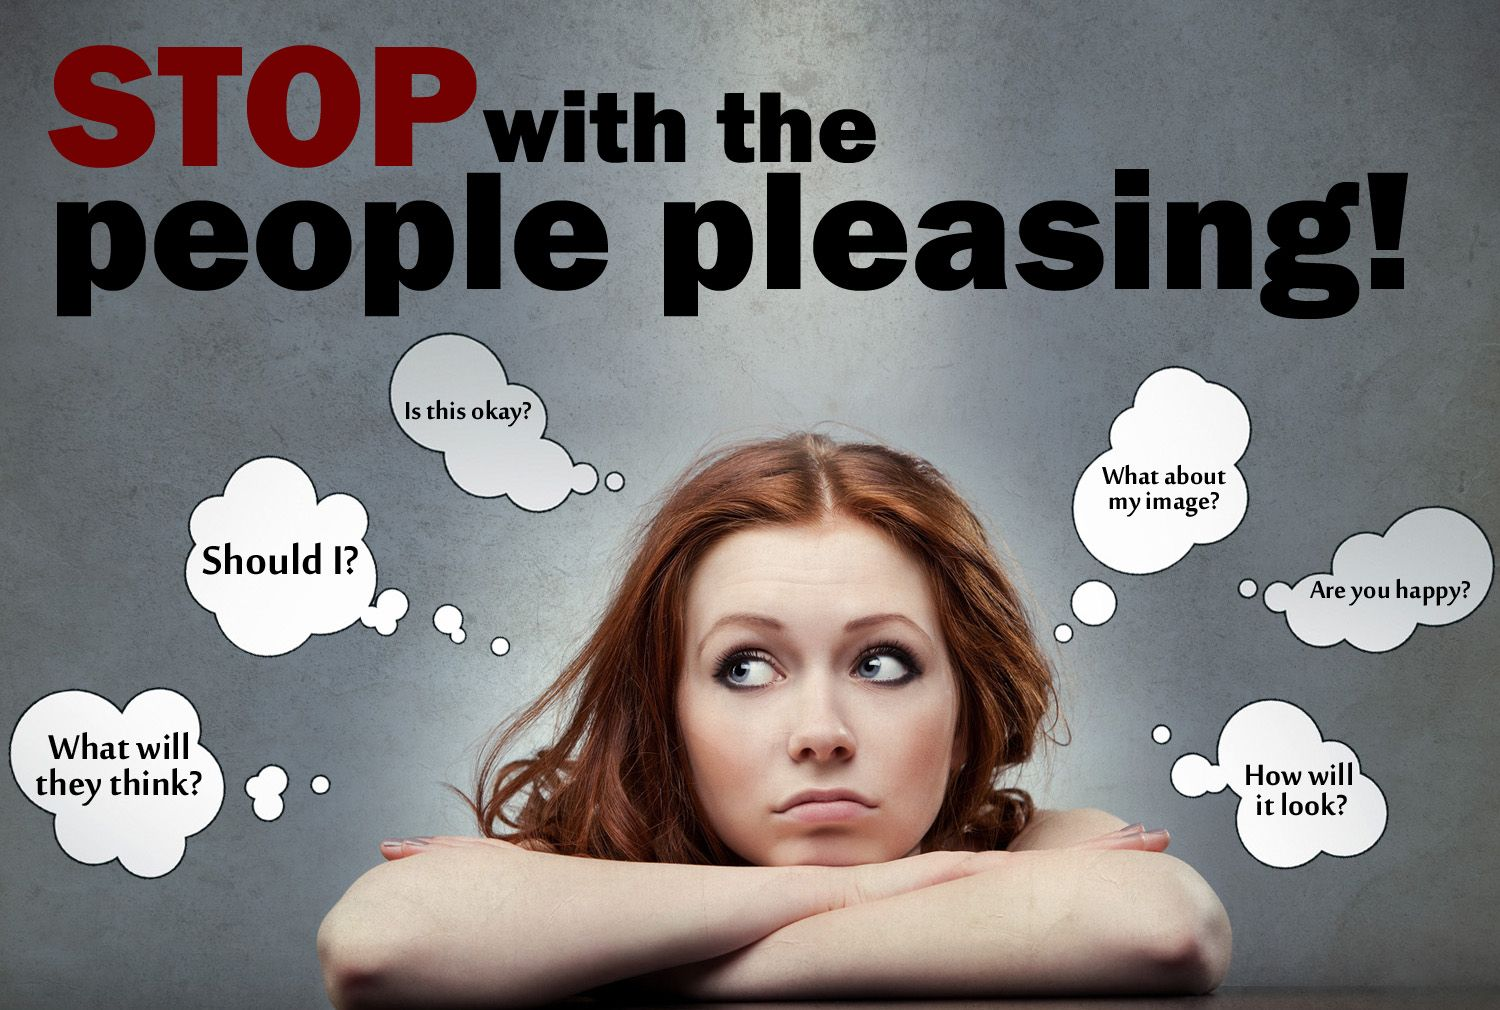 stop with the people pleasing!